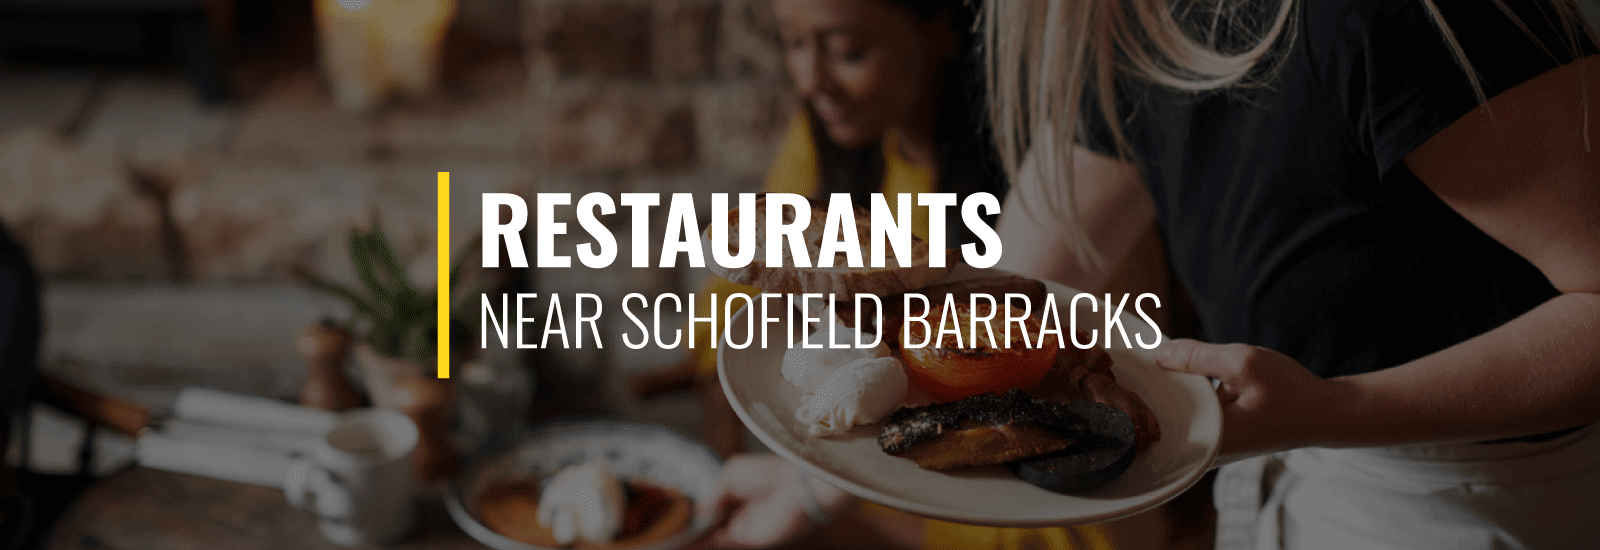 Restaurants Near Schofield Barracks